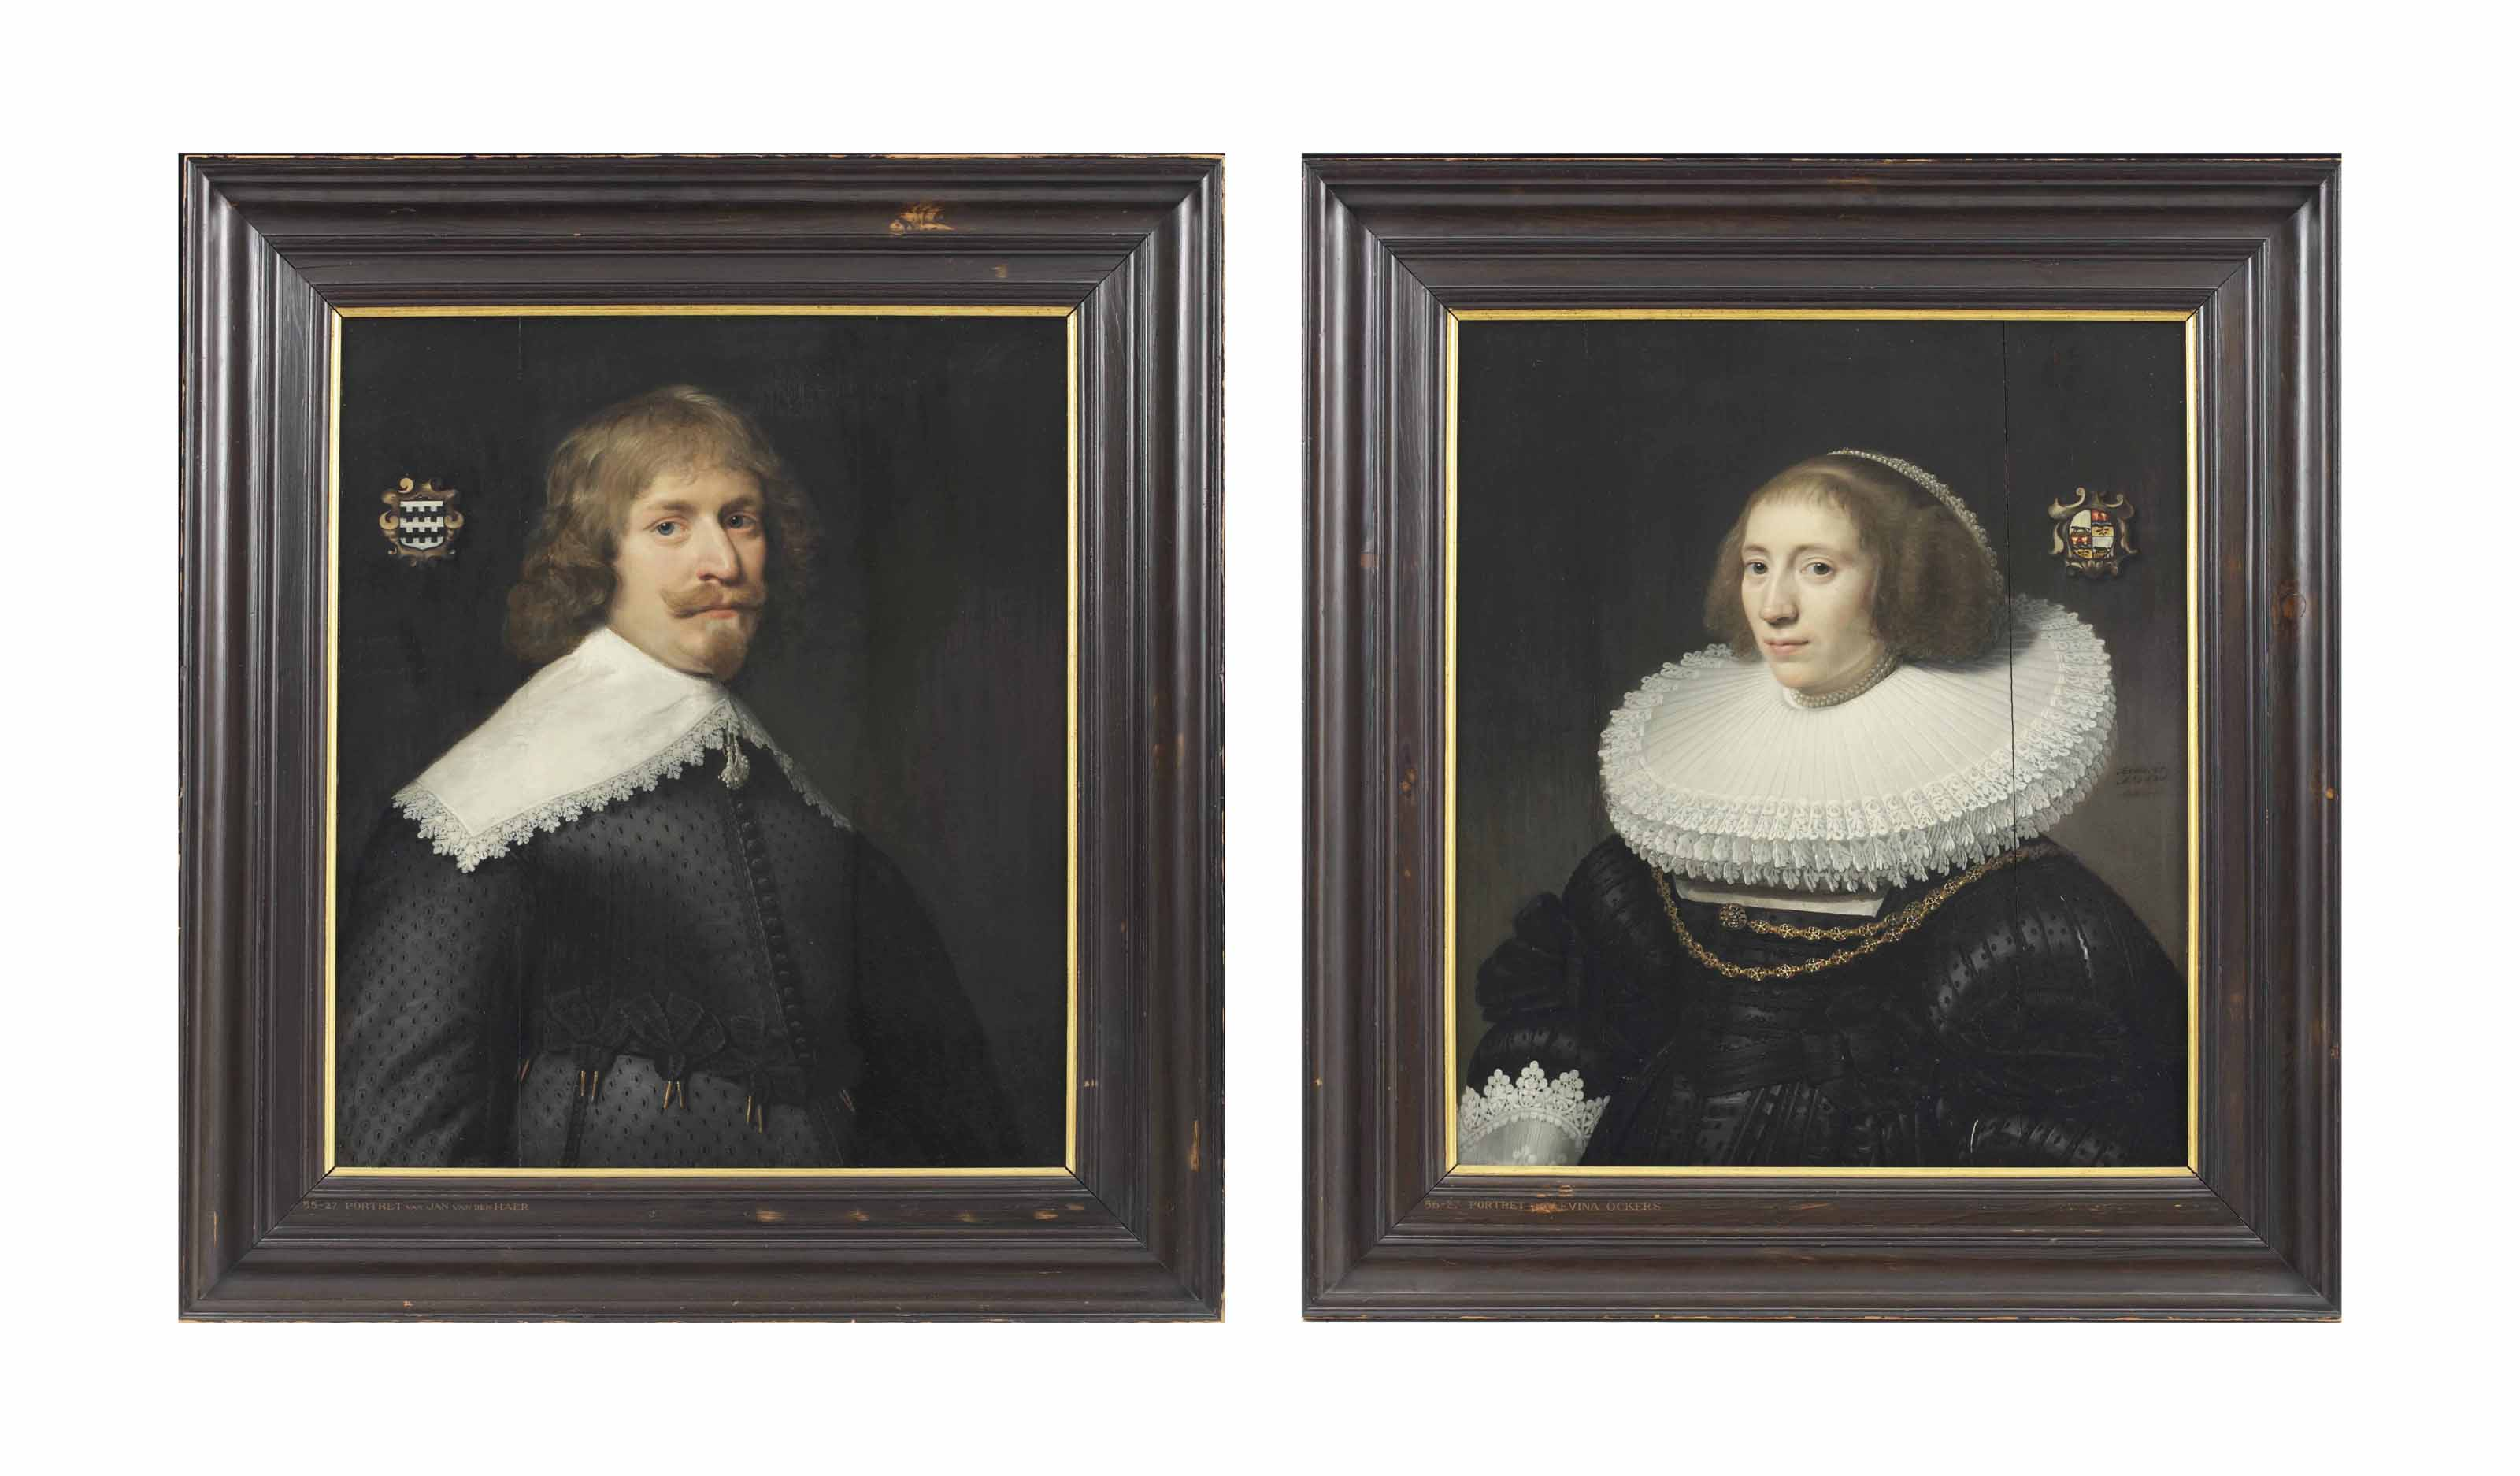 Portrait of Jan van der Haer (1609-1665), half-length, in a black silk doublet with cutwork, edged with black lace; and Portrait of Levina Ockers (1607-1678), half-length, in a black dress with a double layered lace-trimmed ruff and jewelled collar